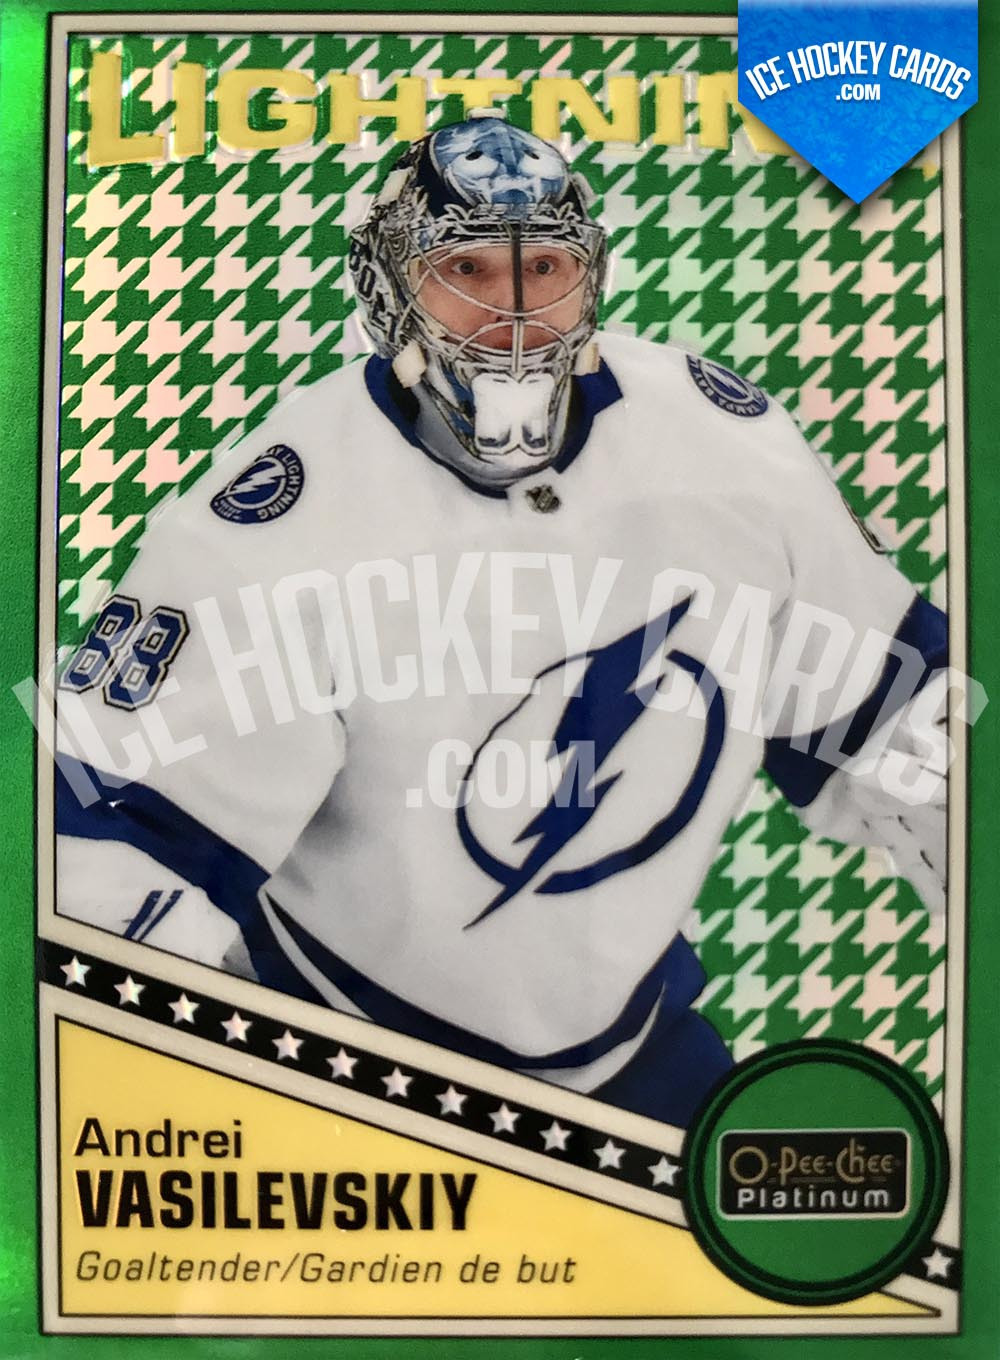 Upper Deck - OPC Platinum 2019-20 - Andrei Vasilevskiy Green Houndstooth Retro Card # to 15 RARE